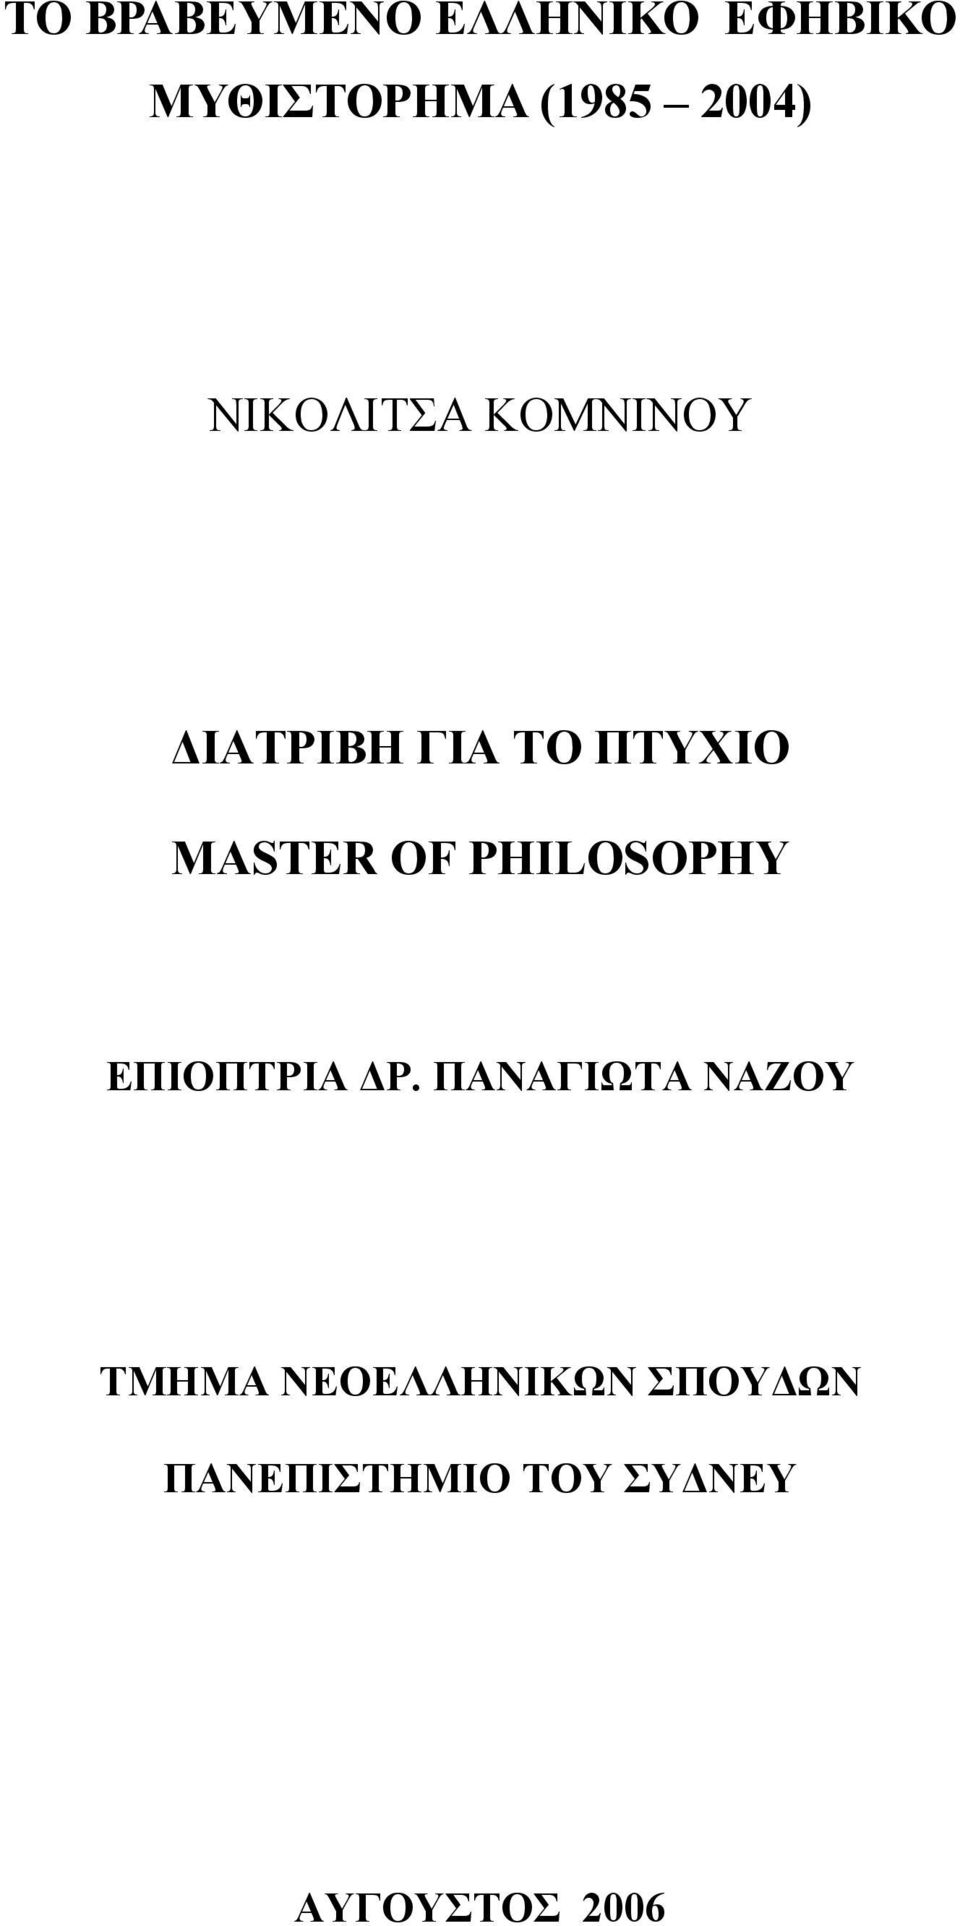 MASTER OF PHILOSOPHY ΕΠΙΟΠΤΡΙΑ ΔΡ.